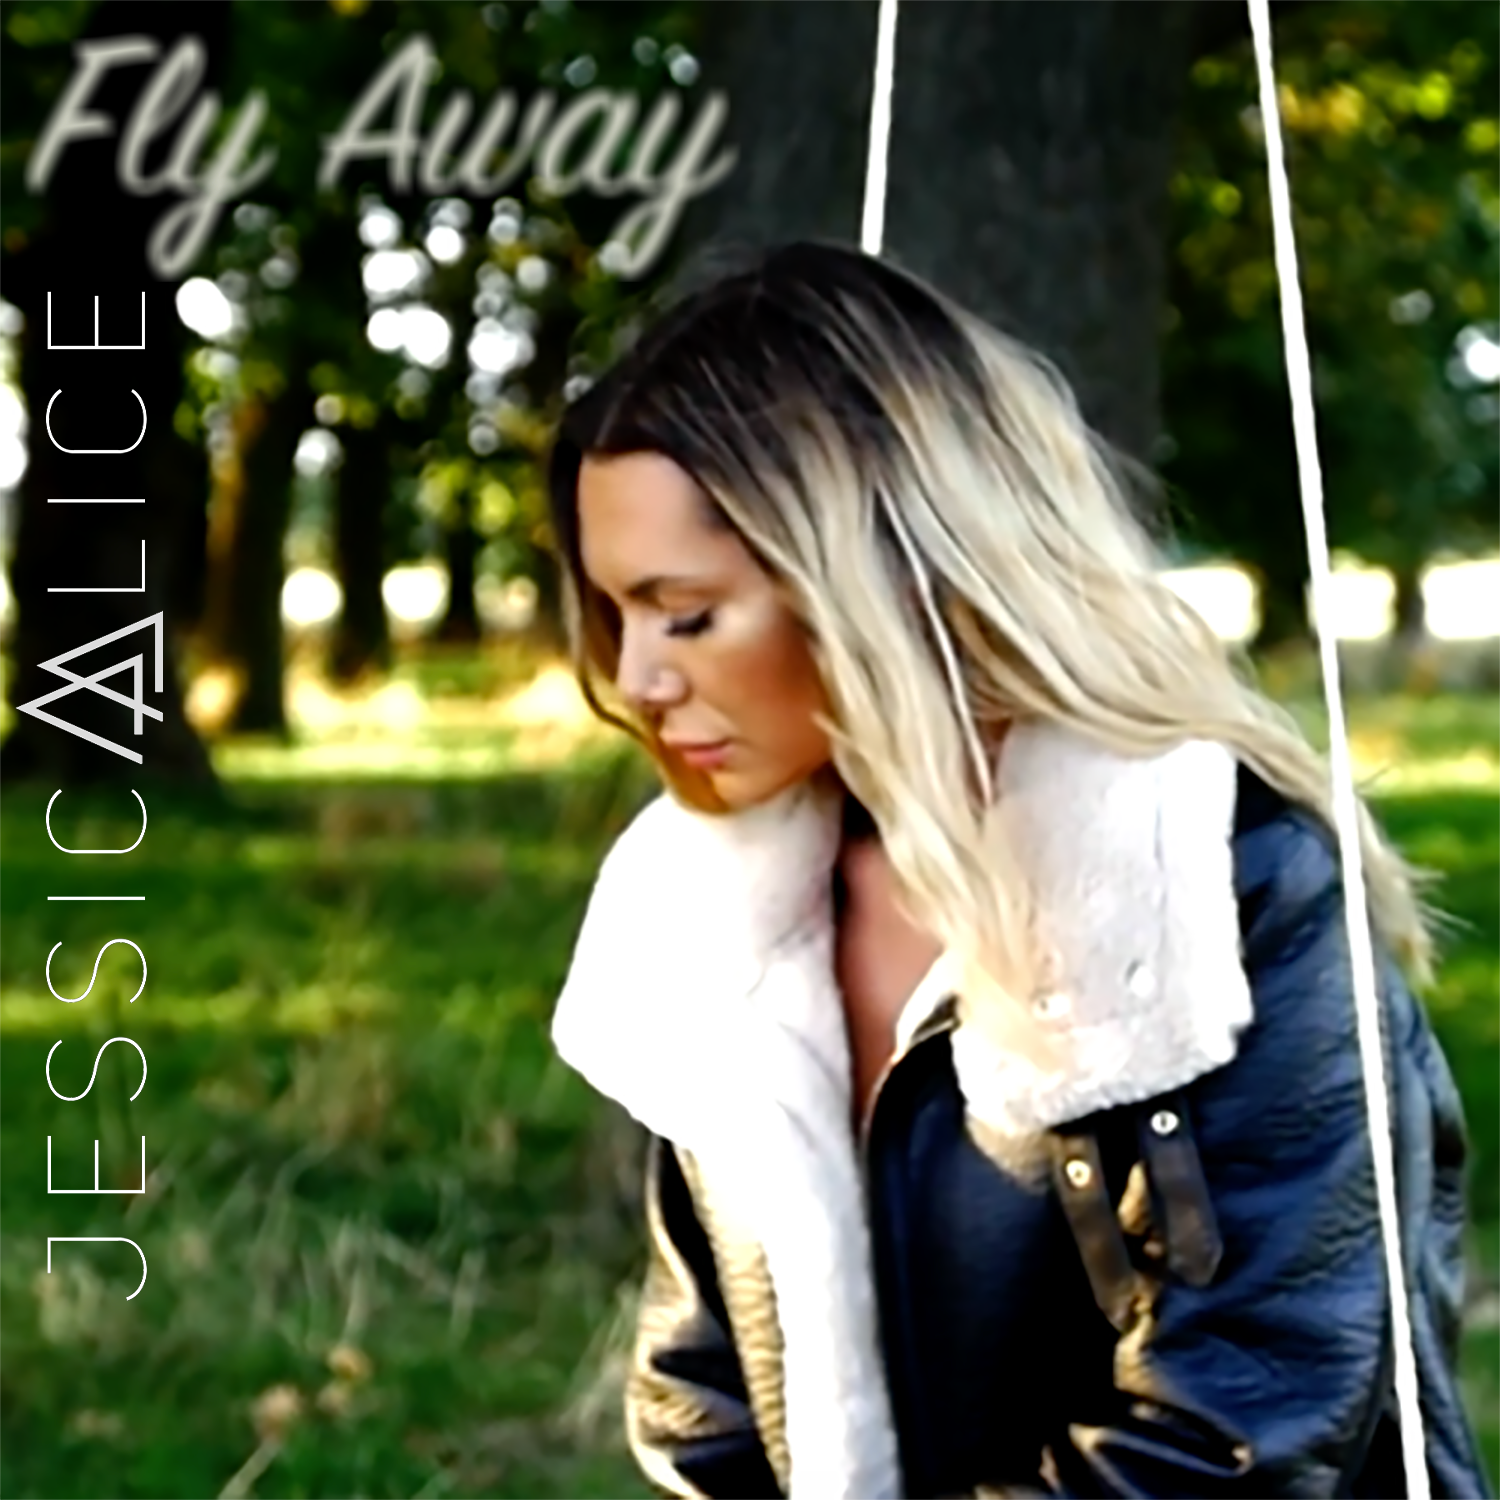 Fly away aw2